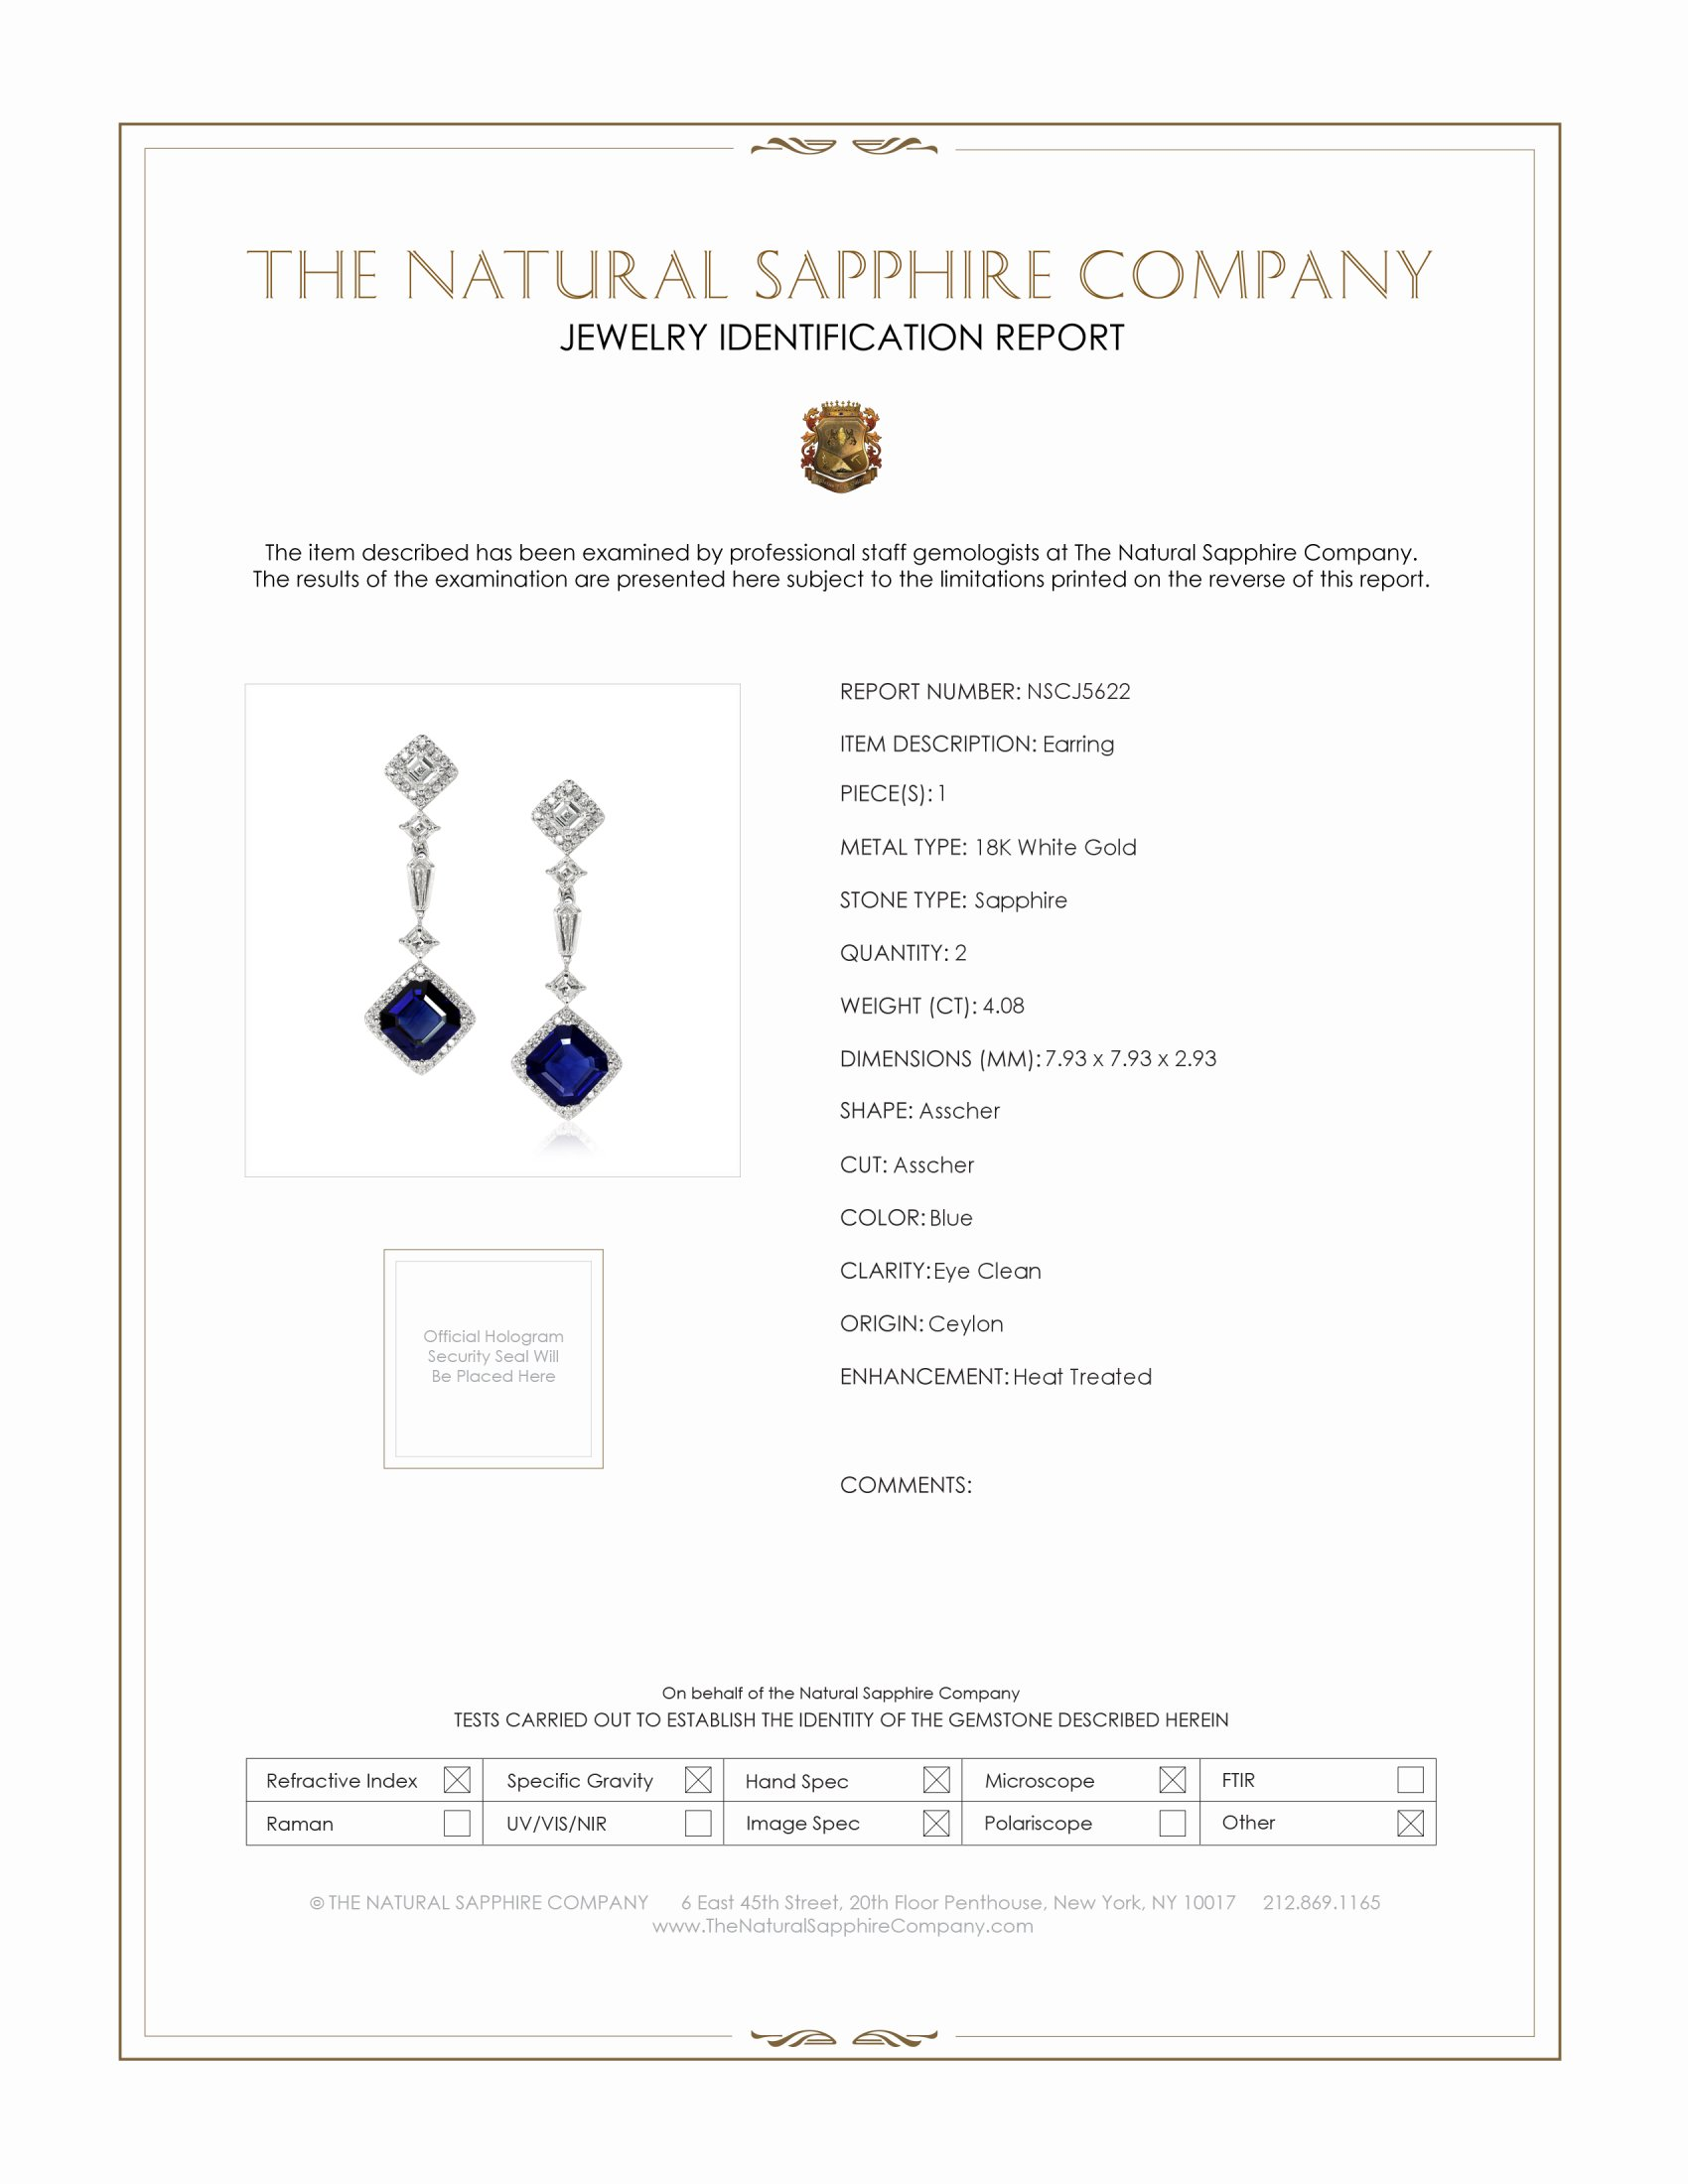 4.08ct Blue Sapphire Earring Certification